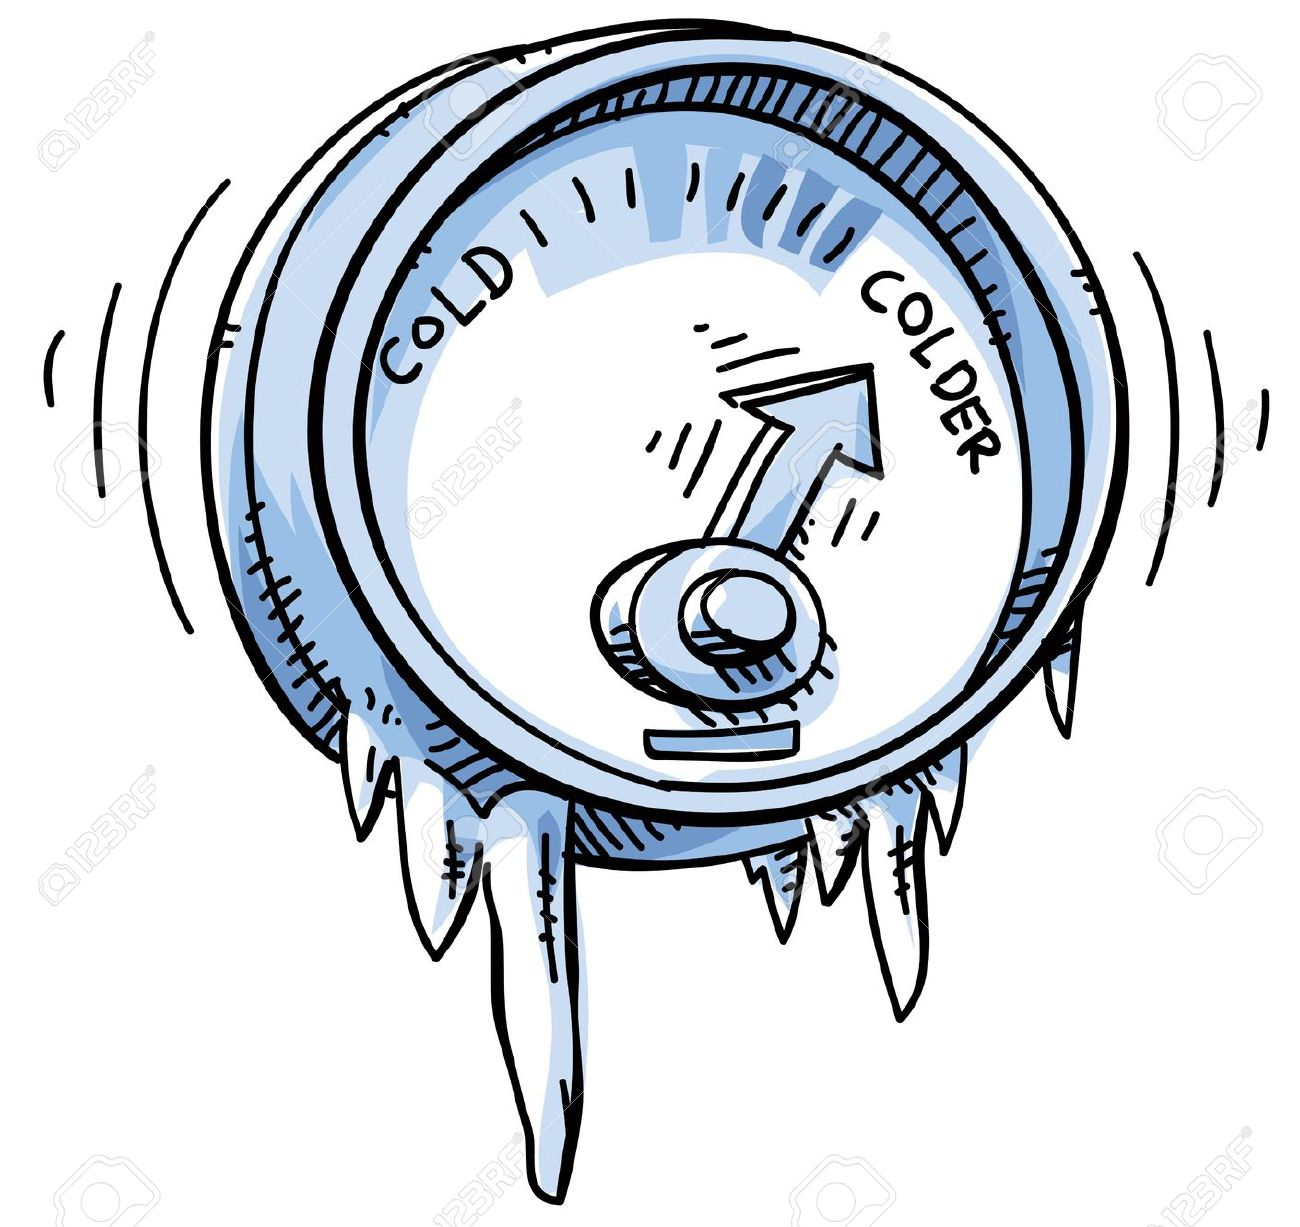 Chill clipart extreme cold Friday  To Due Aqueduct